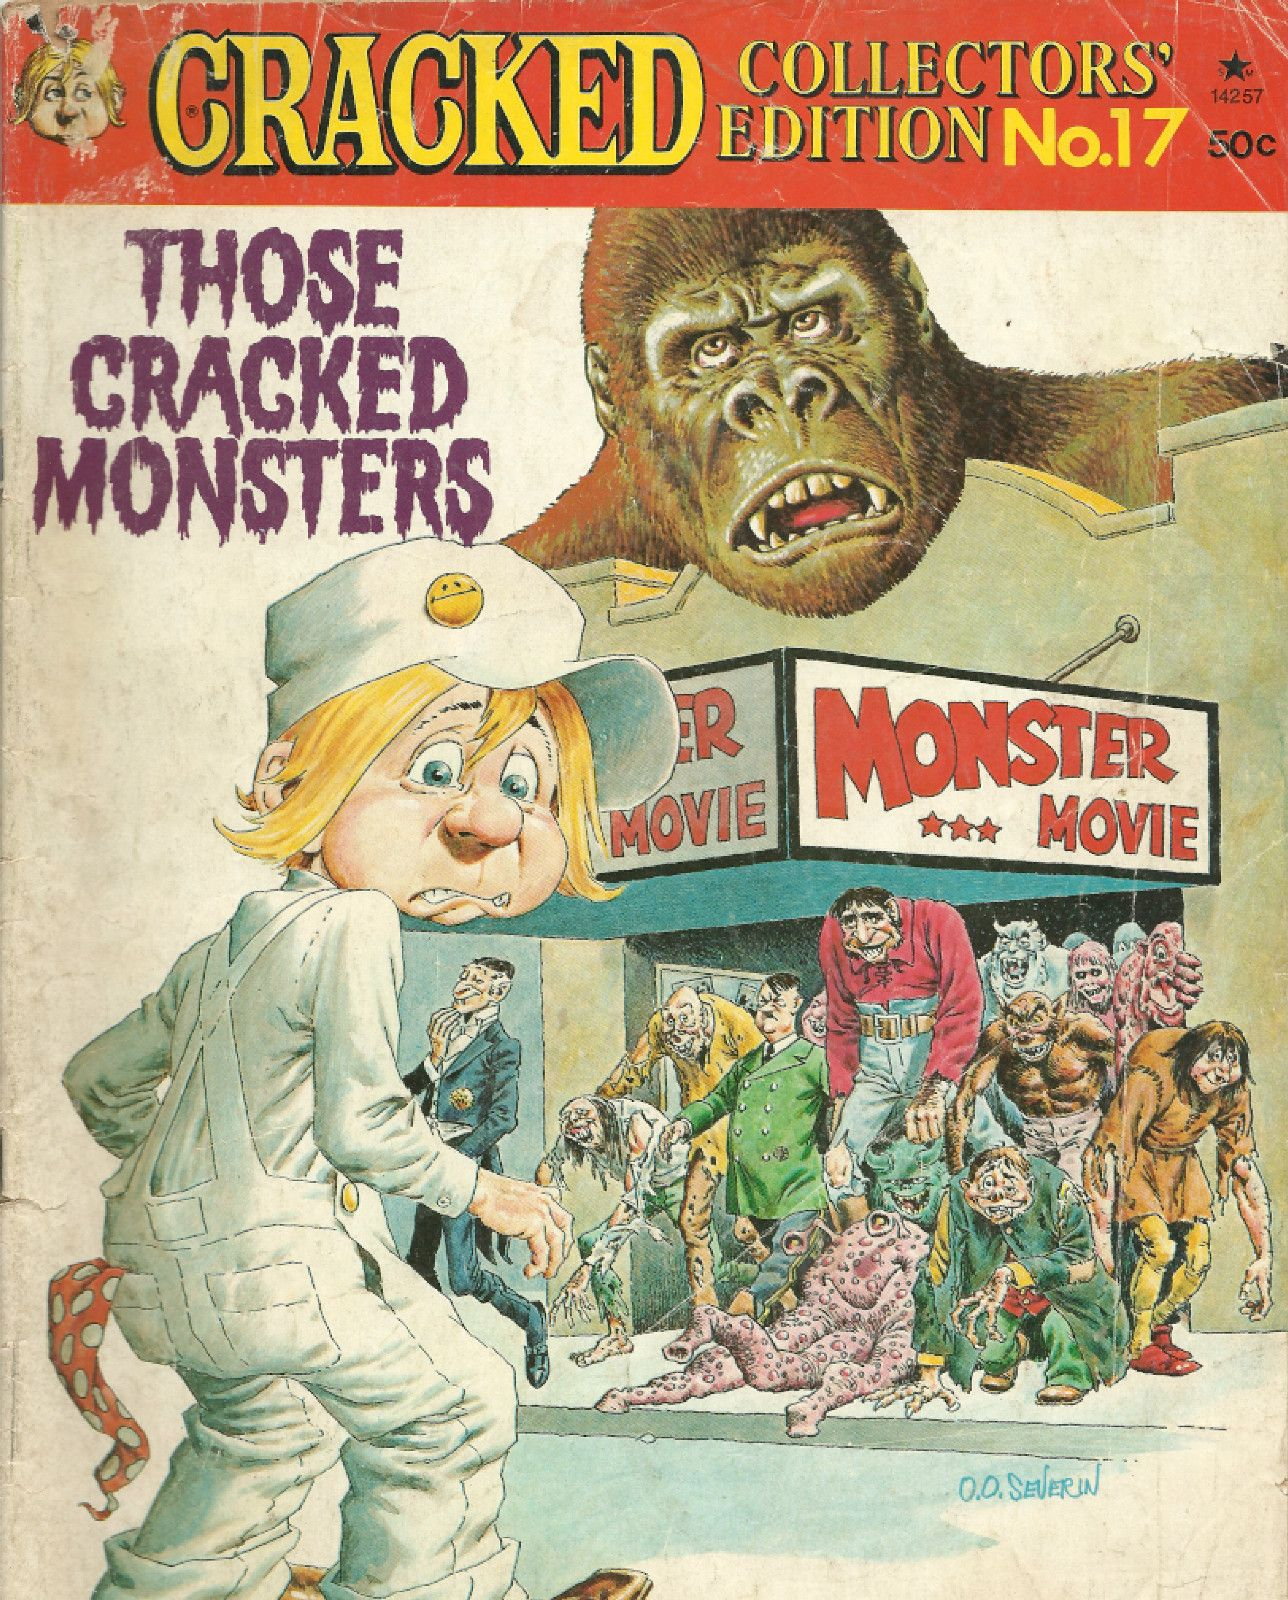 1977 CRACKED MAGAZINE COLLECTORS EDITION NO. 17, MONSTER